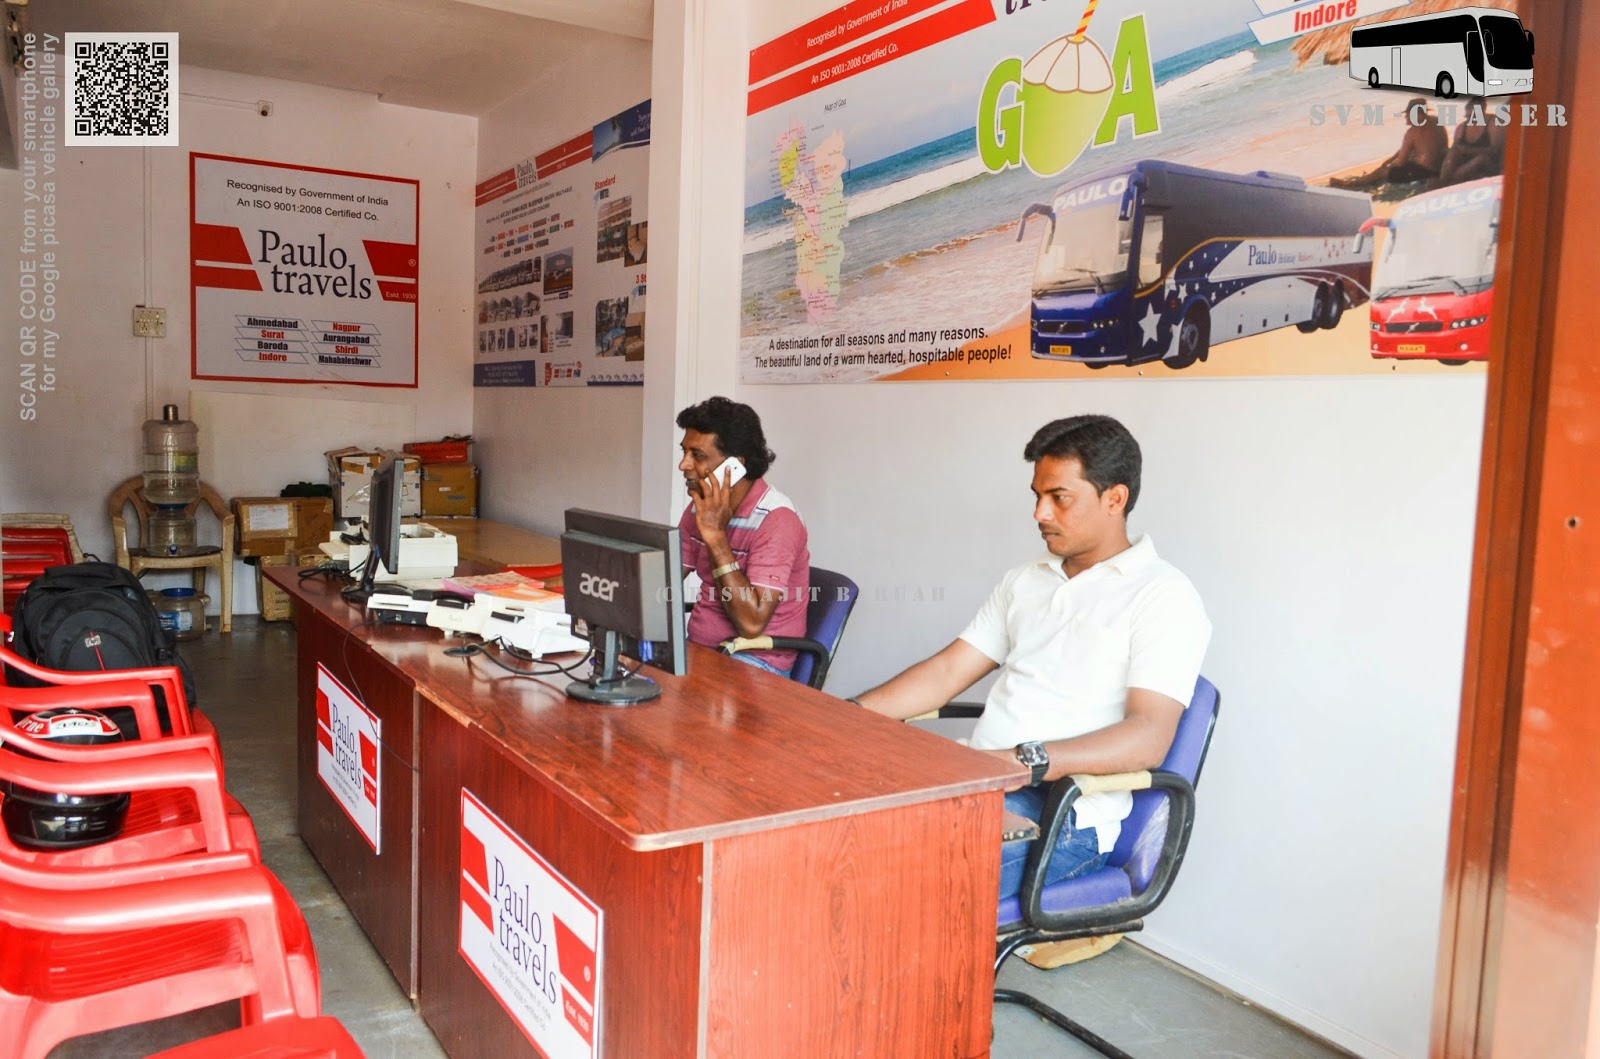 An Interview With Sheikh Rizwan Paulo Travels Branch